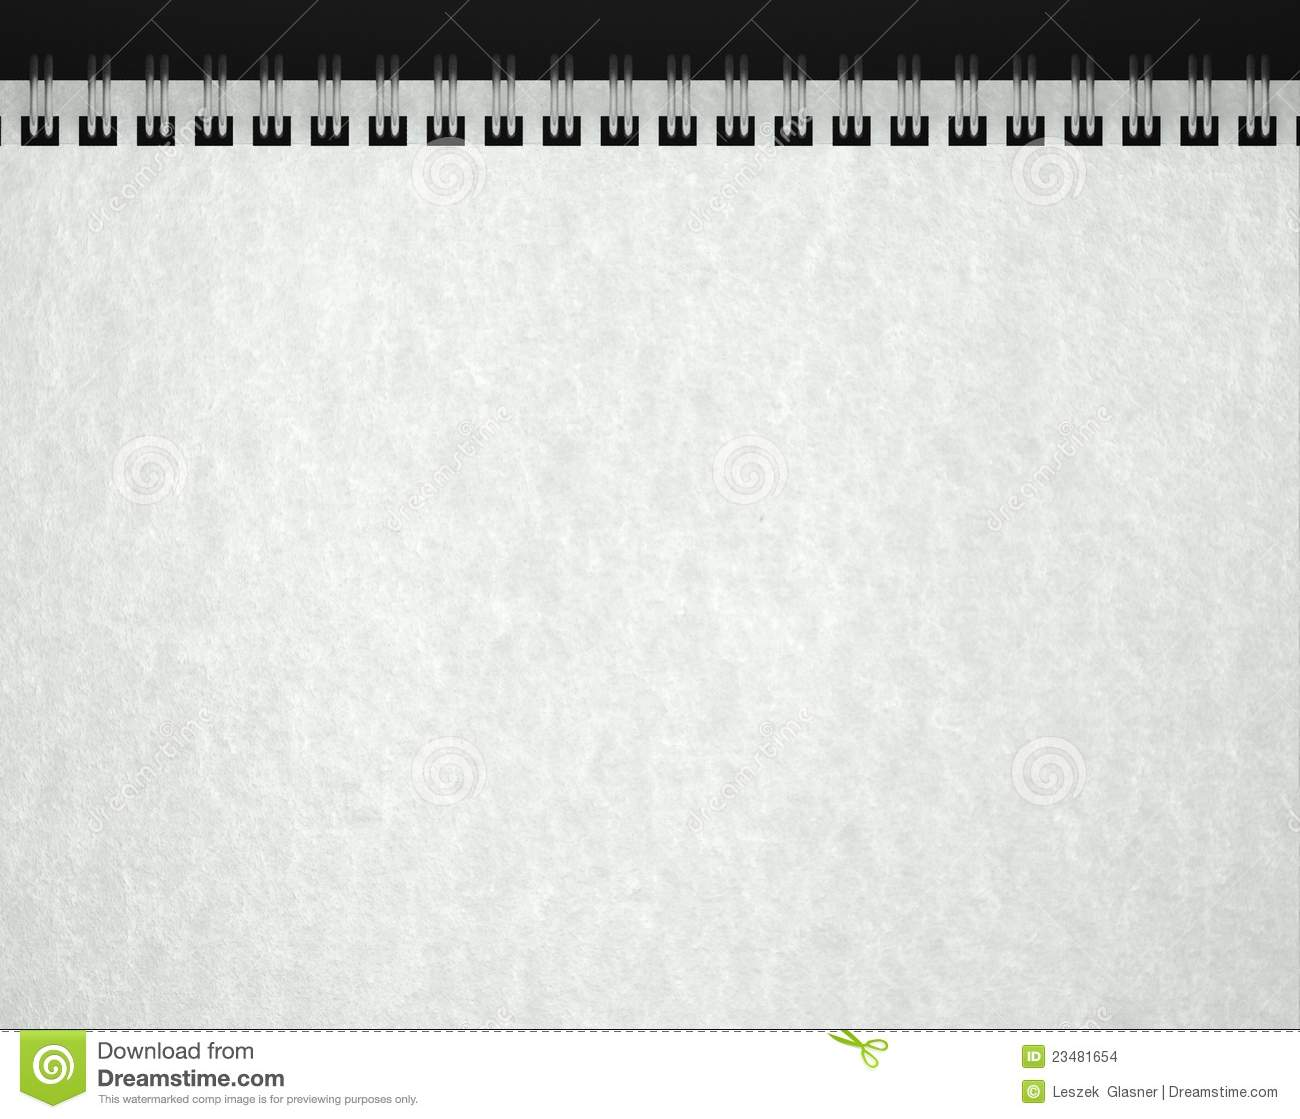 Paper Texture In Blank Note Book Stock Images - Image: 23481654